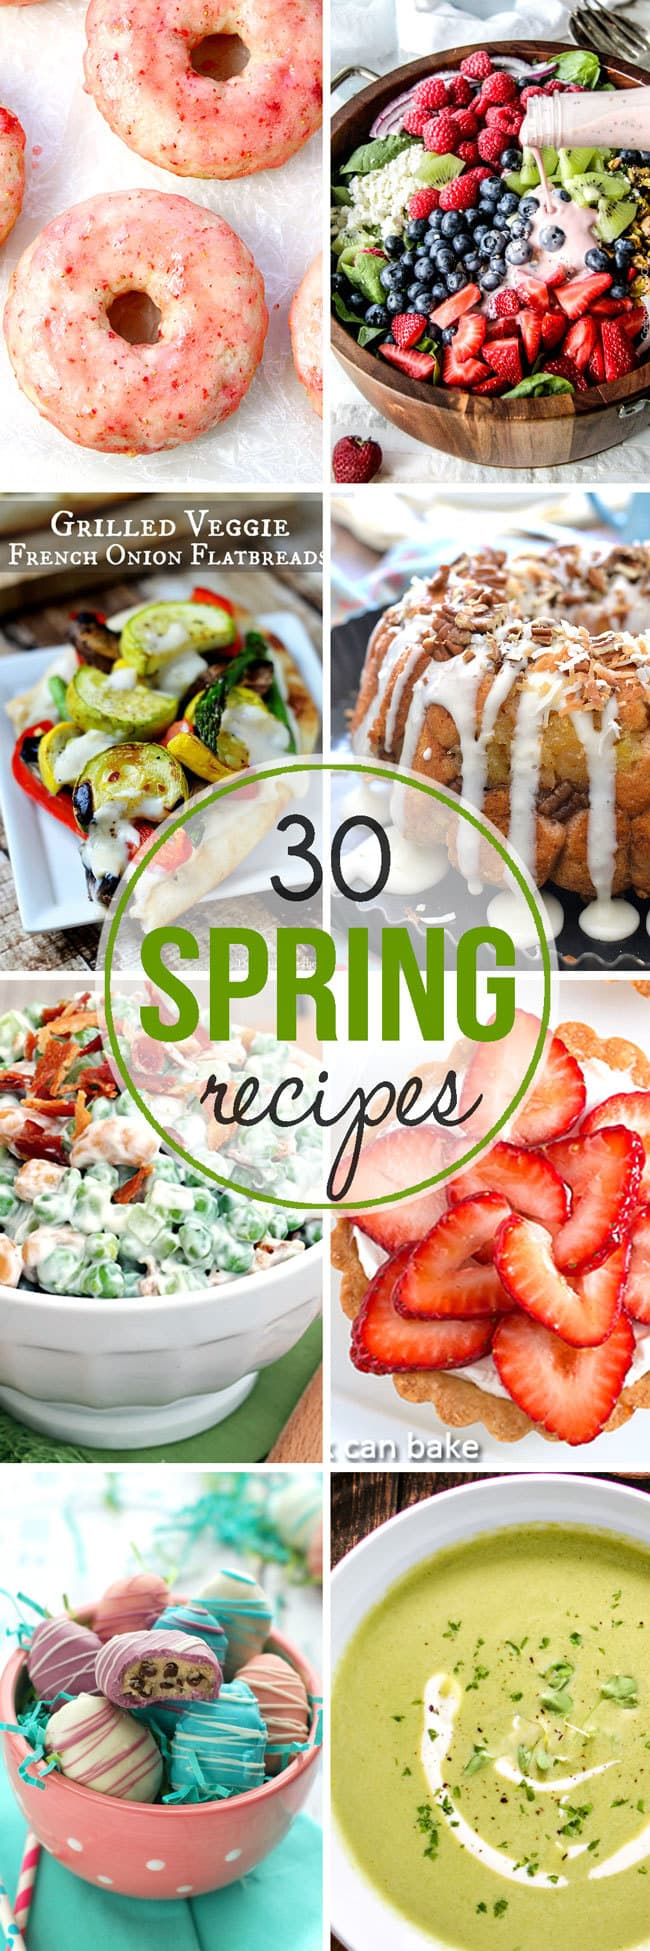 30+ spring recipes for you to enjoy! From breakfast all the way to dessert, there are all sorts of delicious recipes that scream springtime!